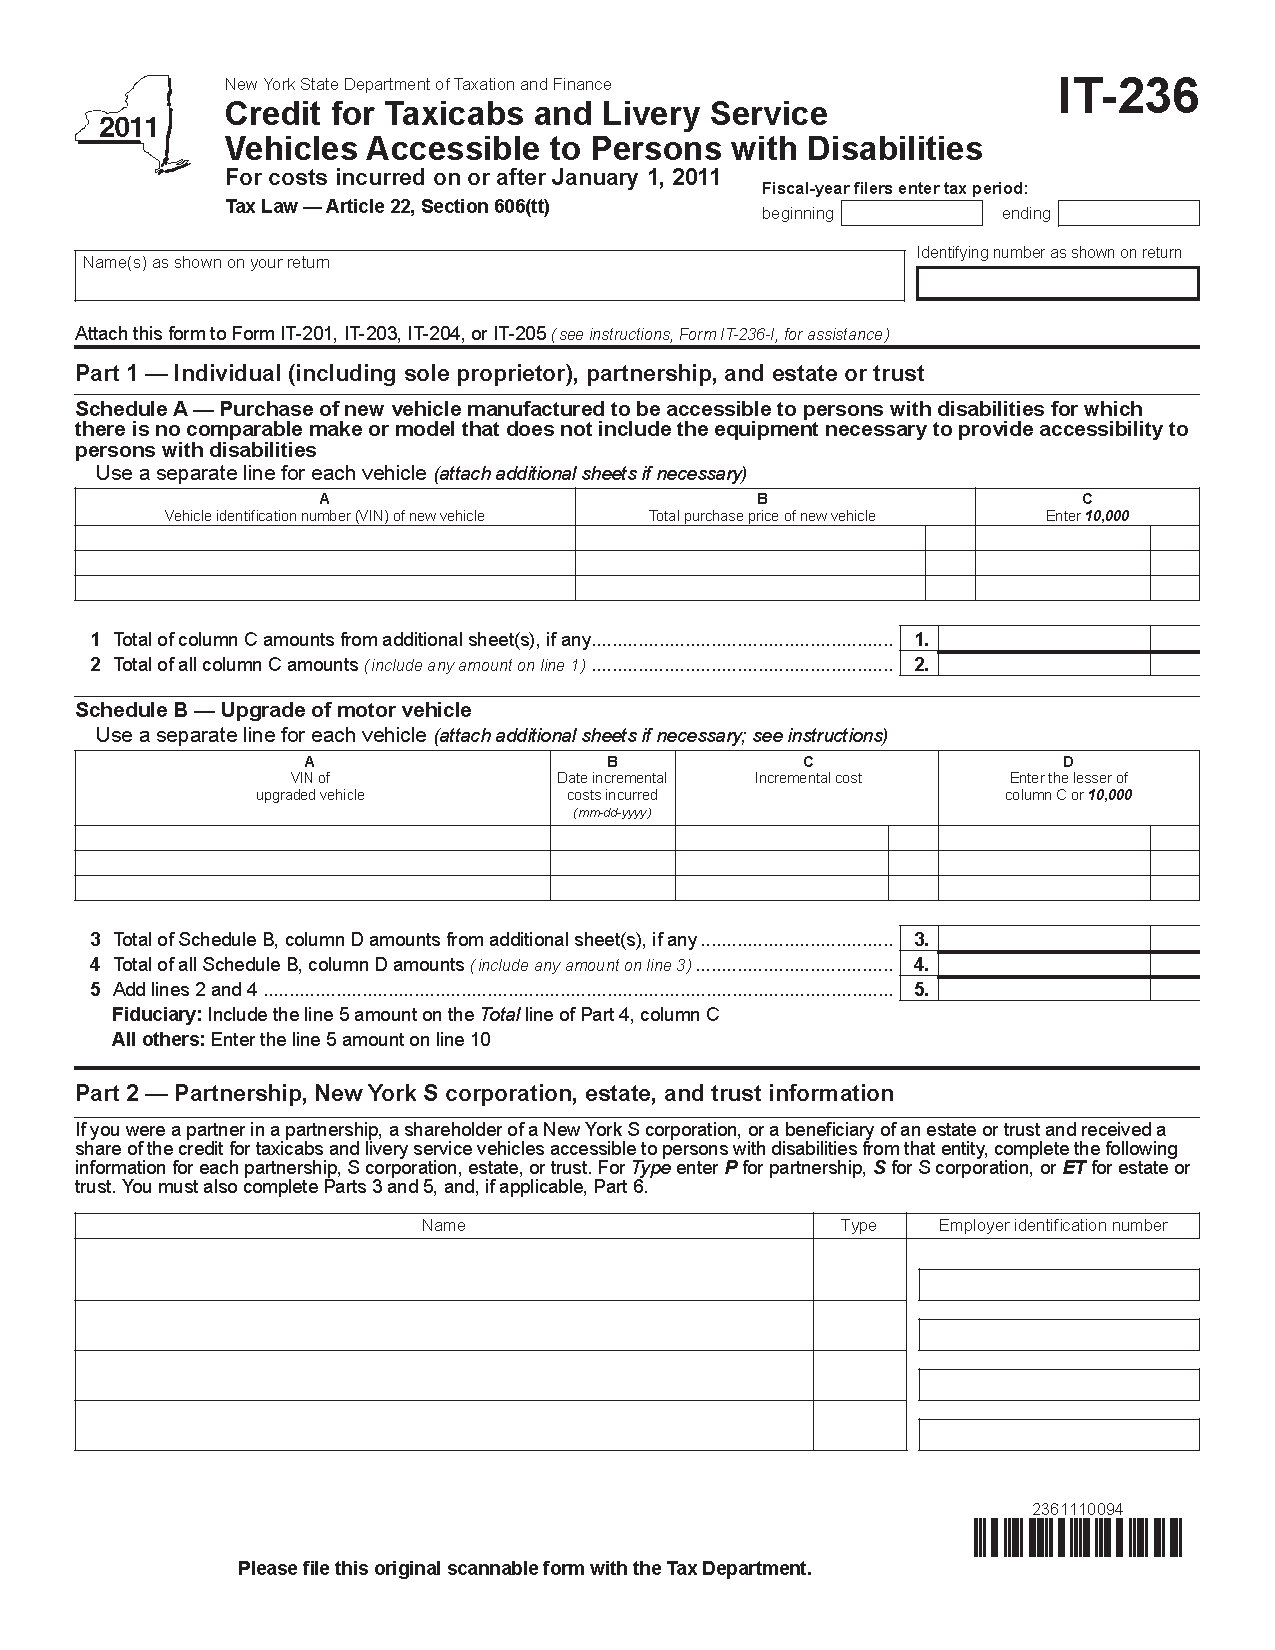 Form It 236 Fill In Credit For Taxicabs And Livery Service